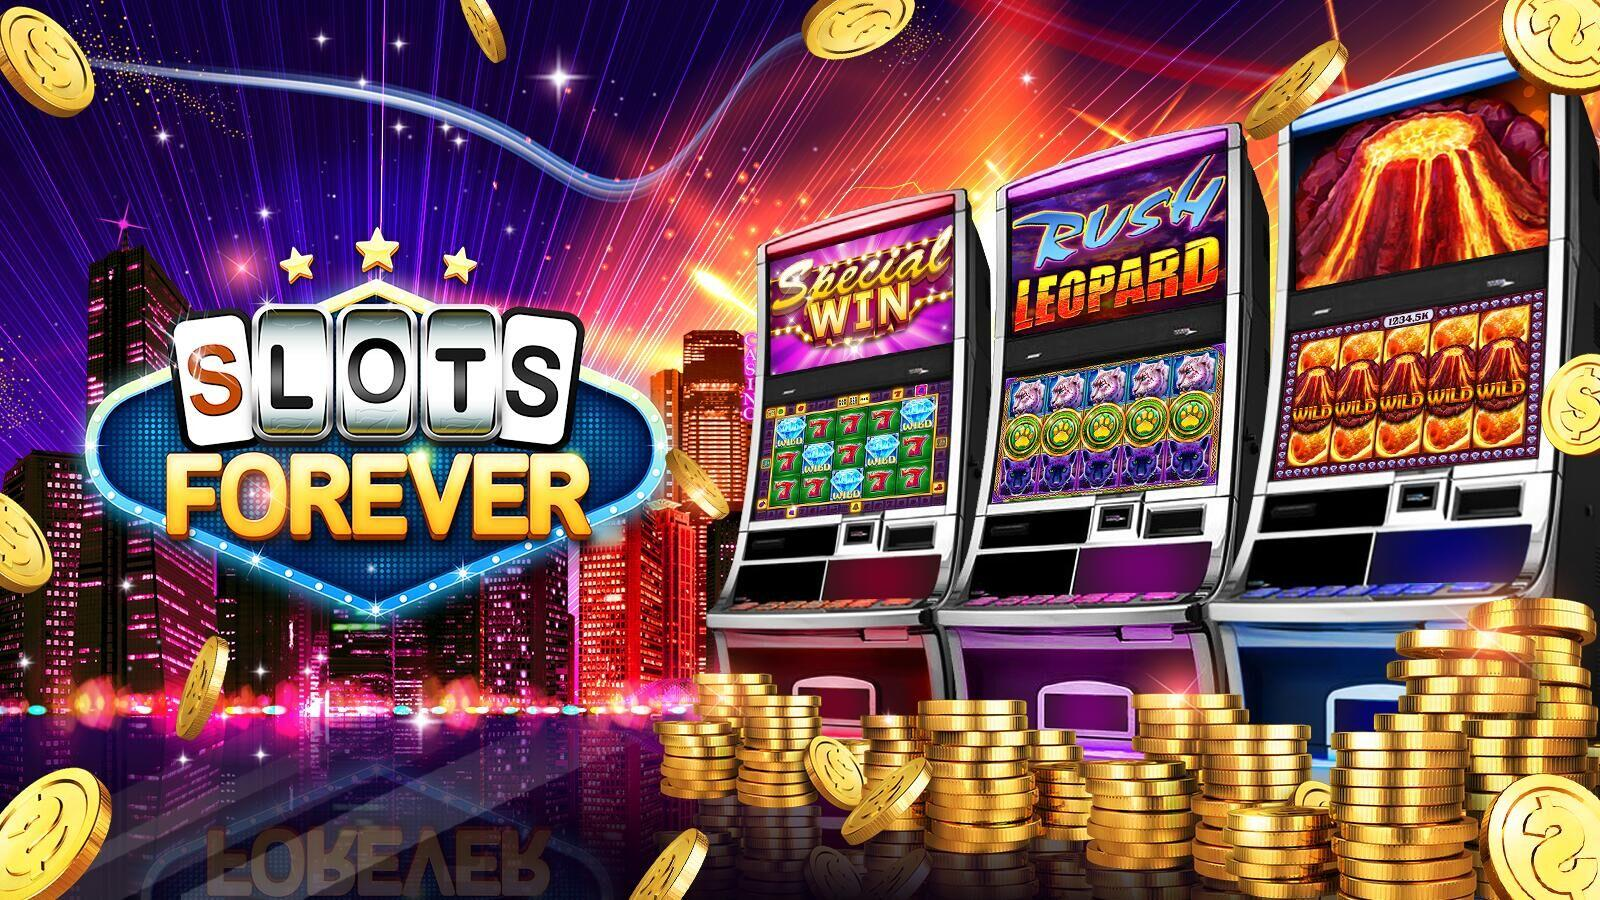 Win Place or Show Slot™ Slot Machine Game to Play Free in WGSs Online Casinos